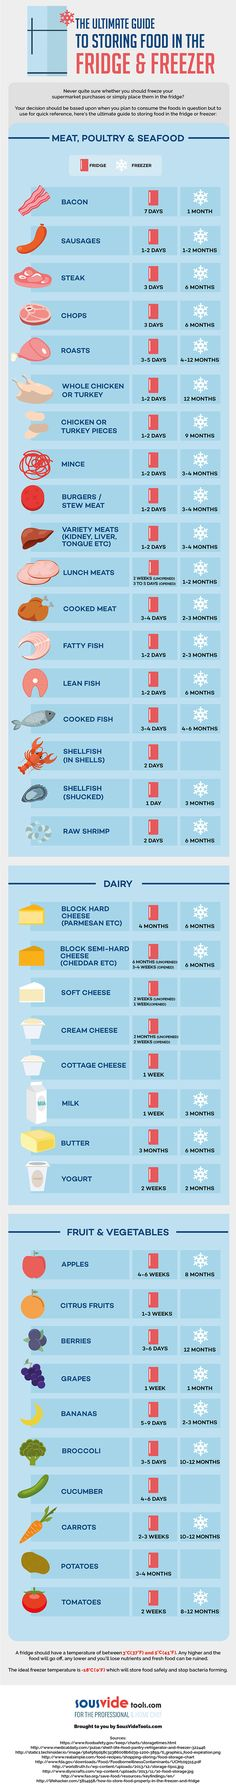 The Ultimate Guide To Storing Food In The Fridge And Freezer #Infographic #Food